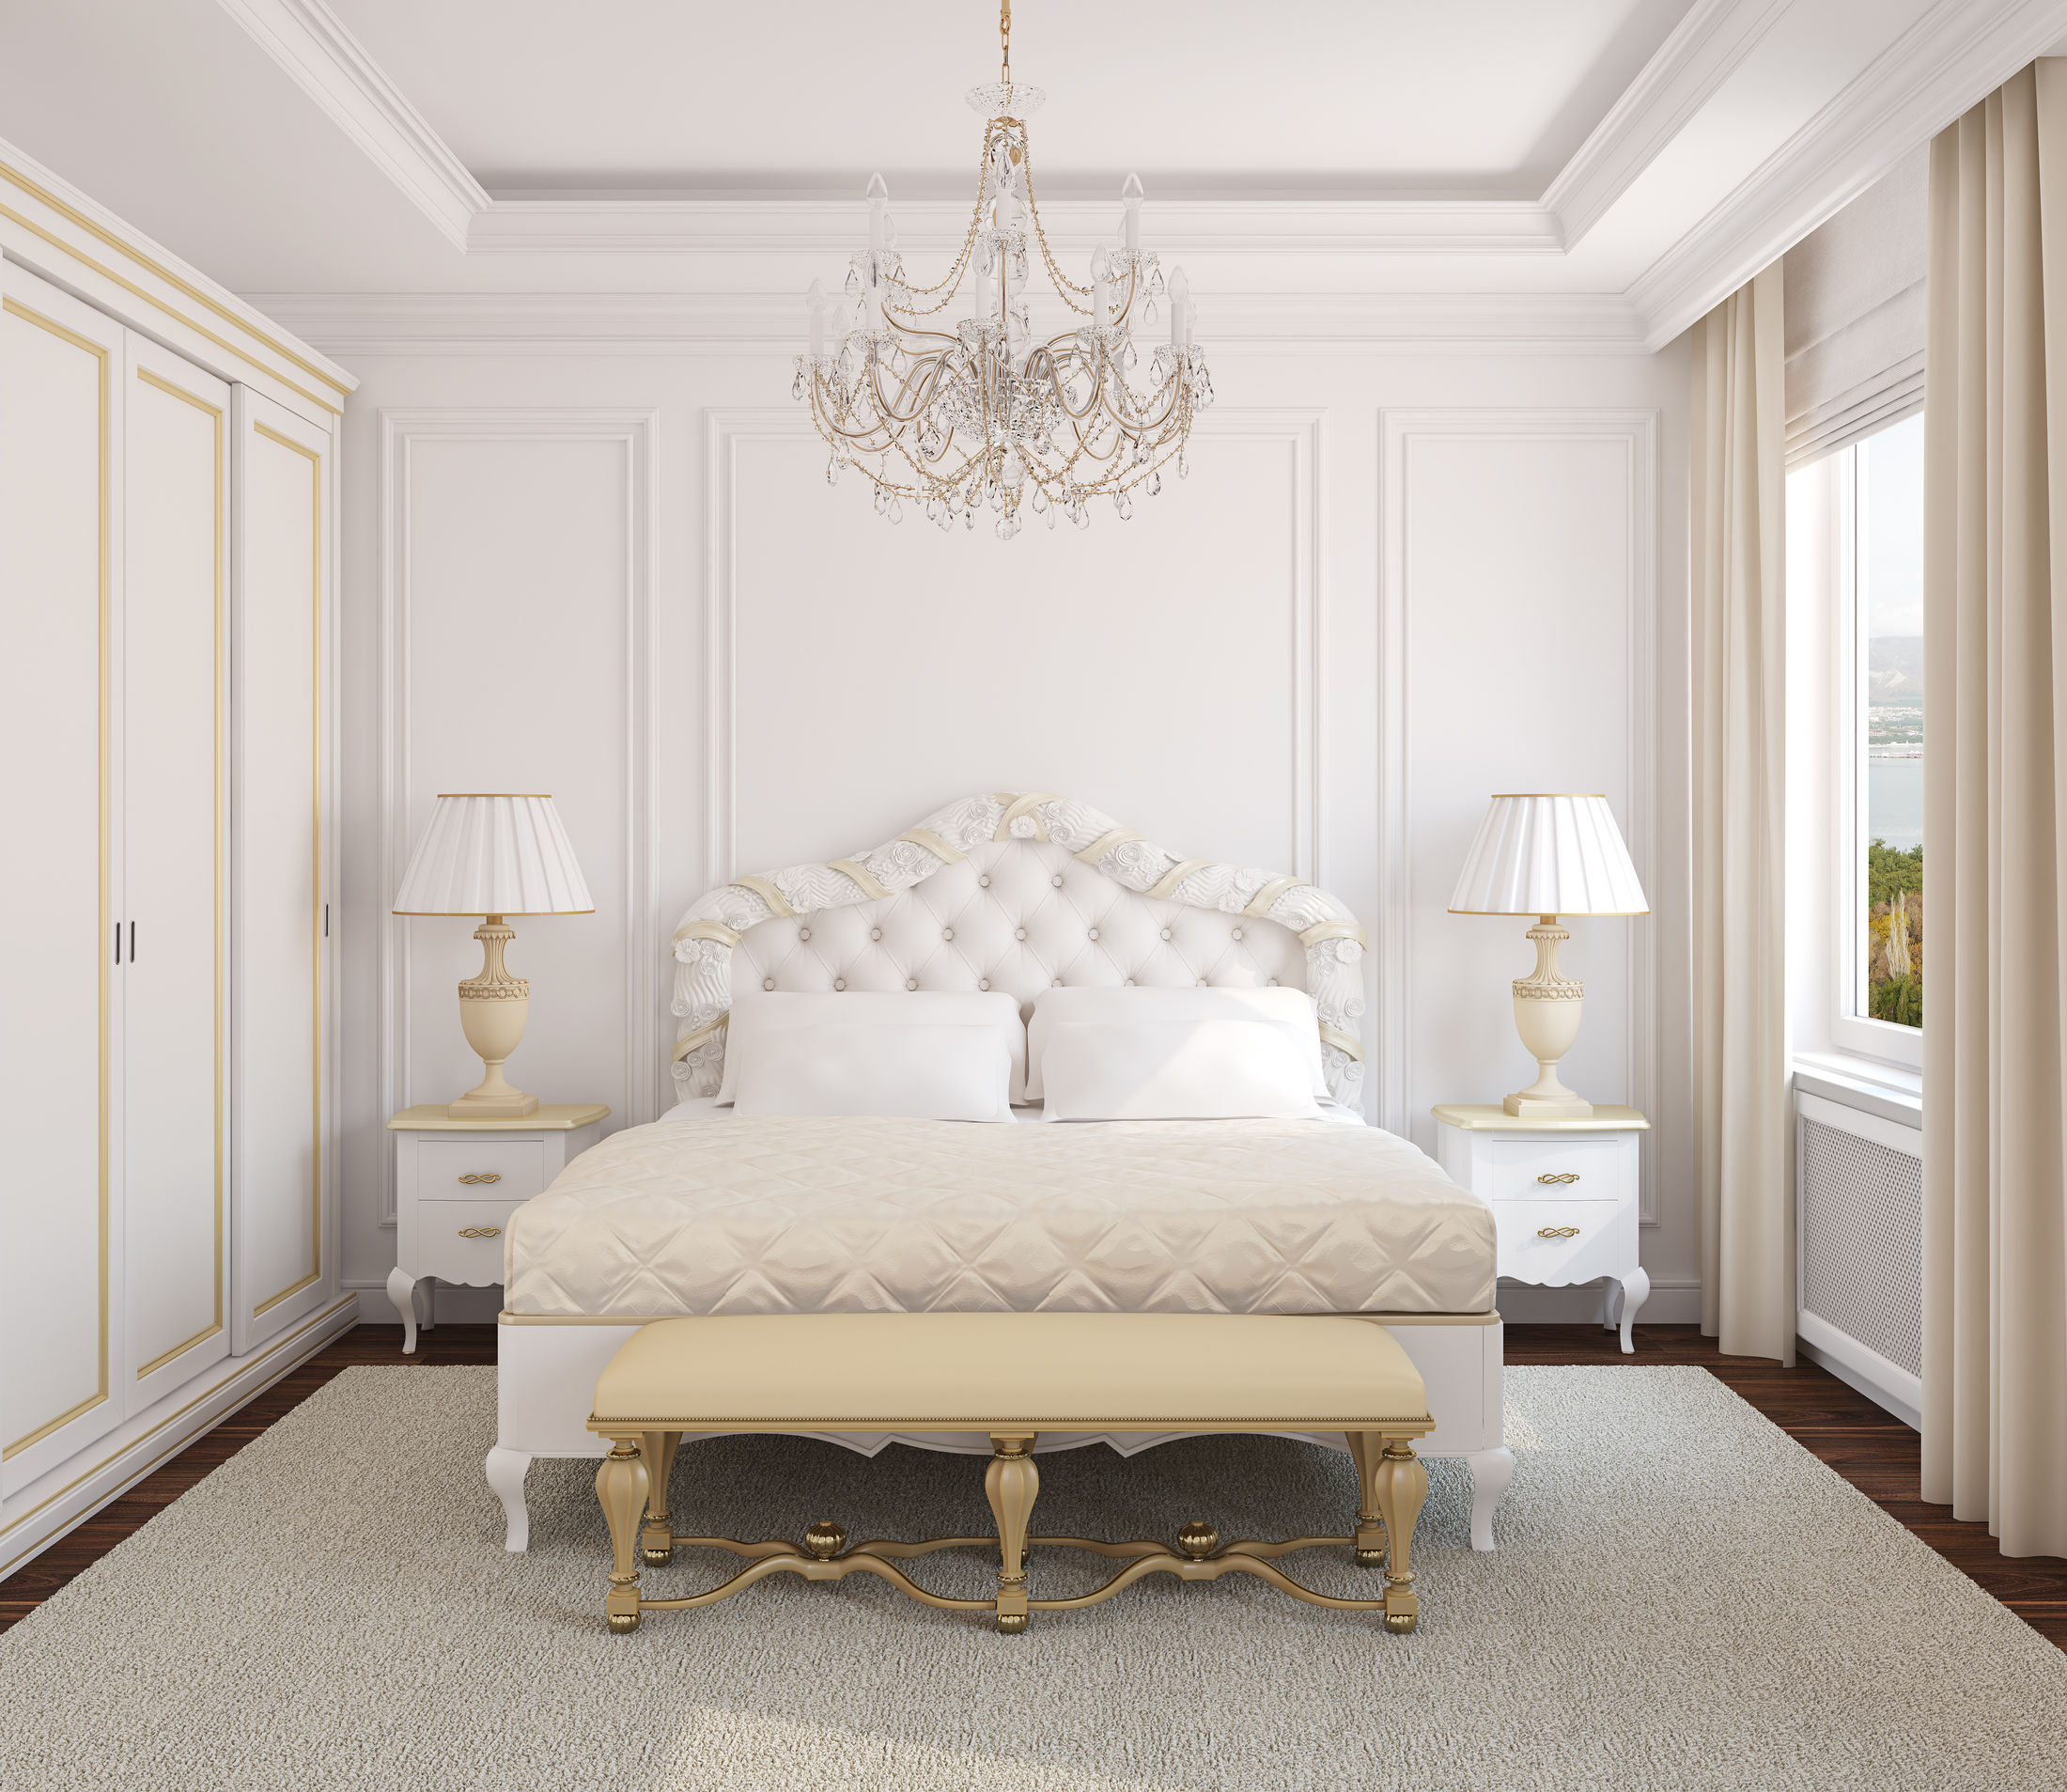 Classical white bedroom interior. 3d render. Photo behind the window was made by me.